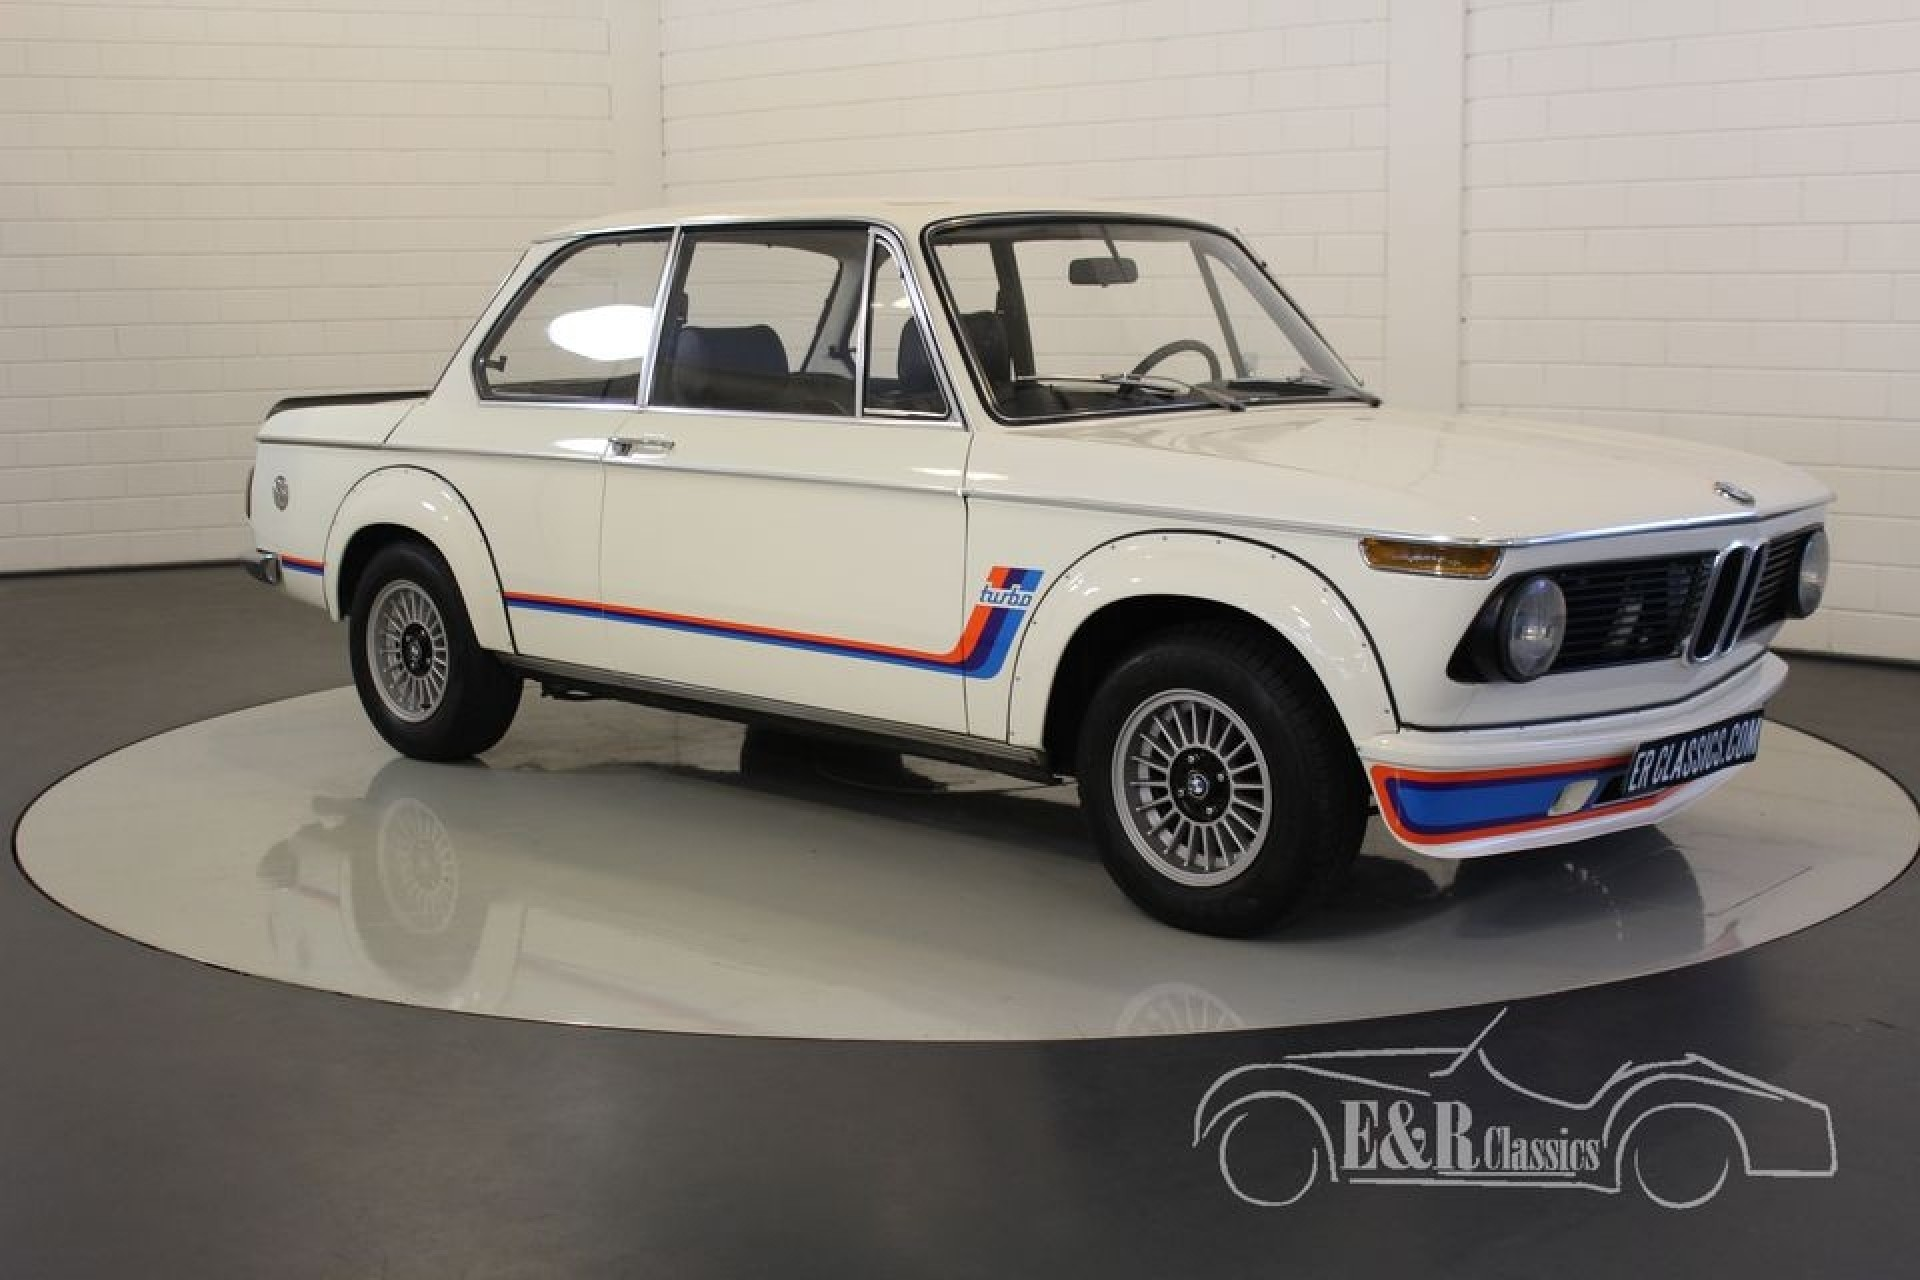 bmw 2002 turbo look 1974 vendre erclassics. Black Bedroom Furniture Sets. Home Design Ideas